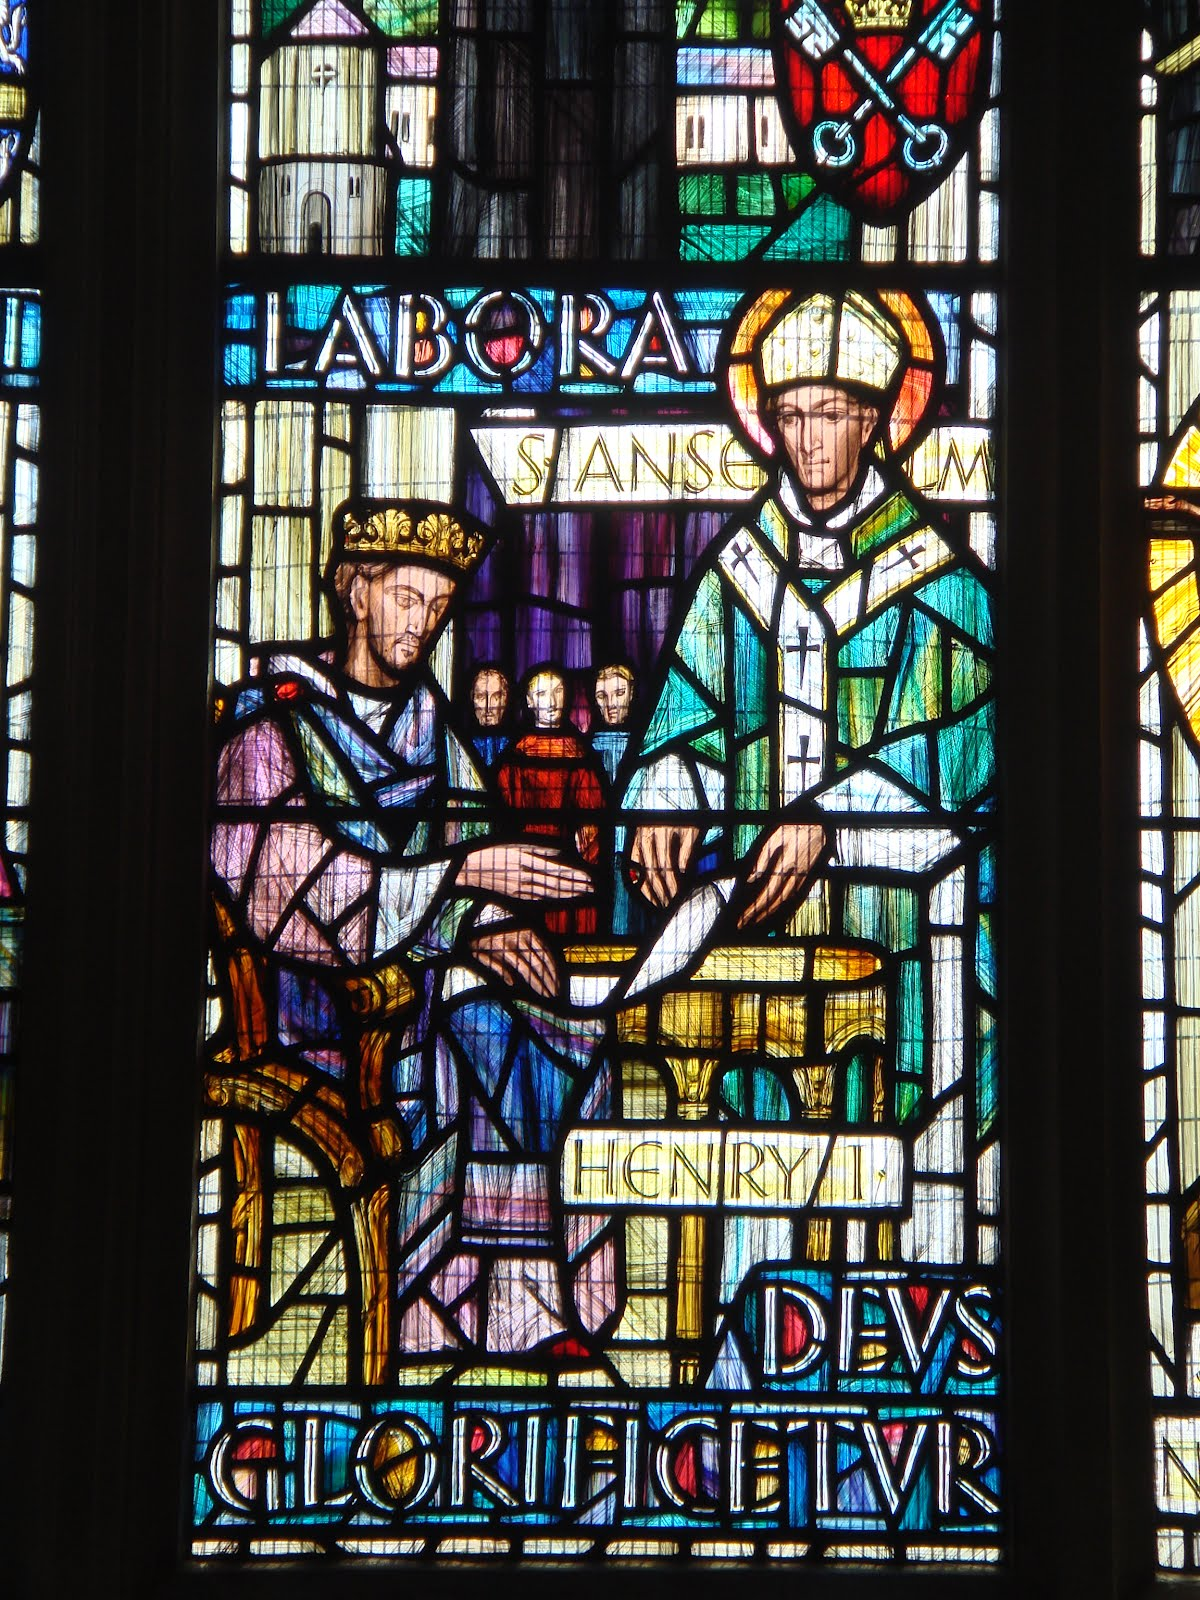 st anselm and the greatness of god Today the church celebrates the feast of st anselm, archbishop of canterbury st anselm's motto fides quaerens intellectum, faith seeking understanding, is the motto of my graduate schoolit sums up much of the theological tradition of the church and anselm's own approach to the great mysteries of the faith.